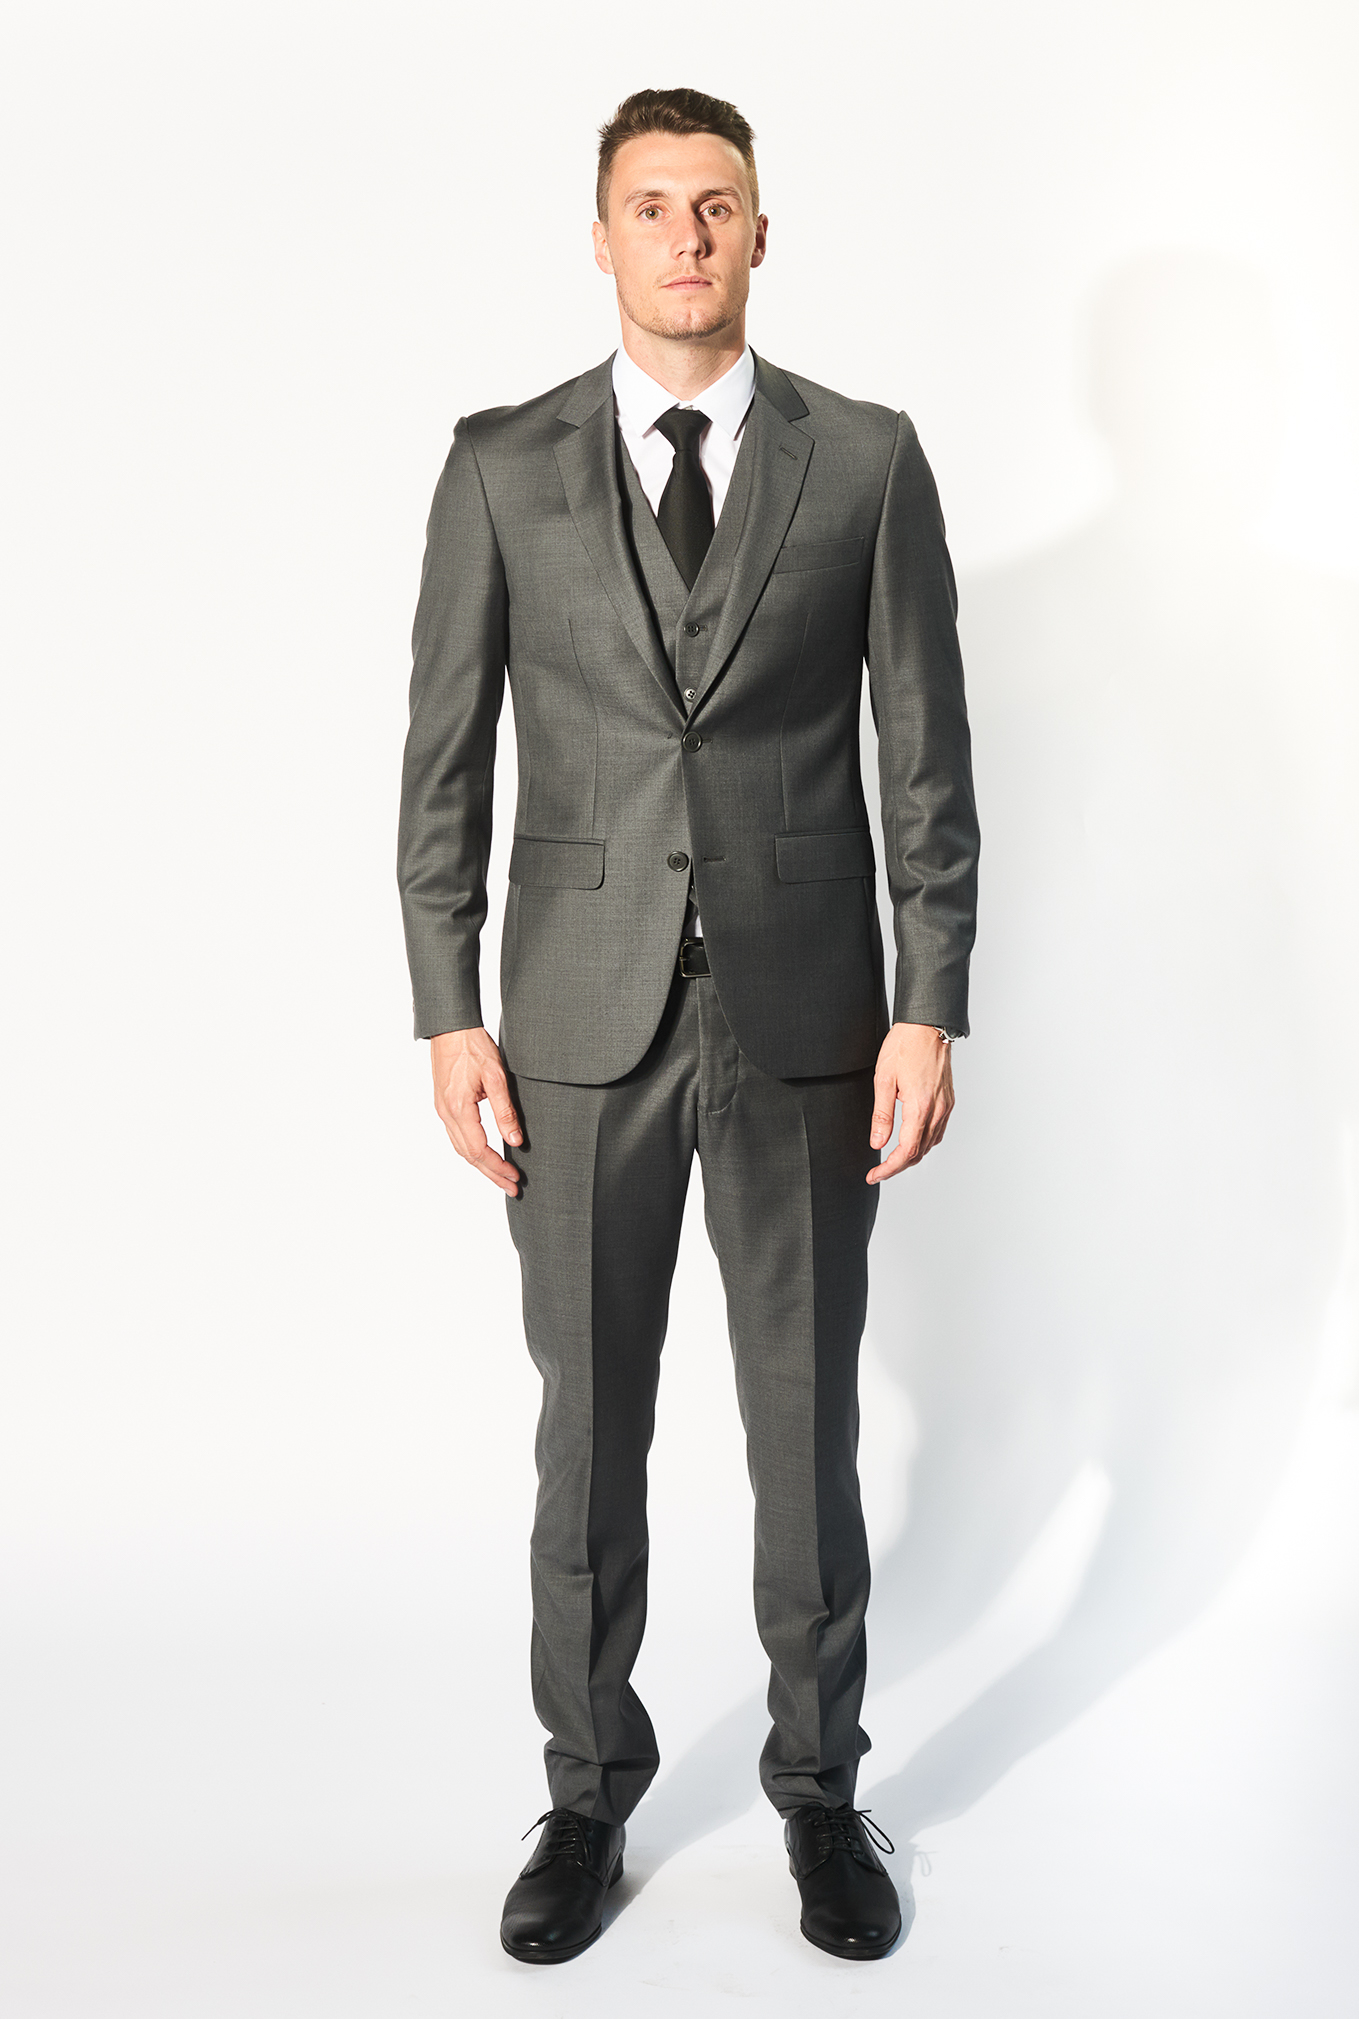 The Daniel grey suit for hire or sale